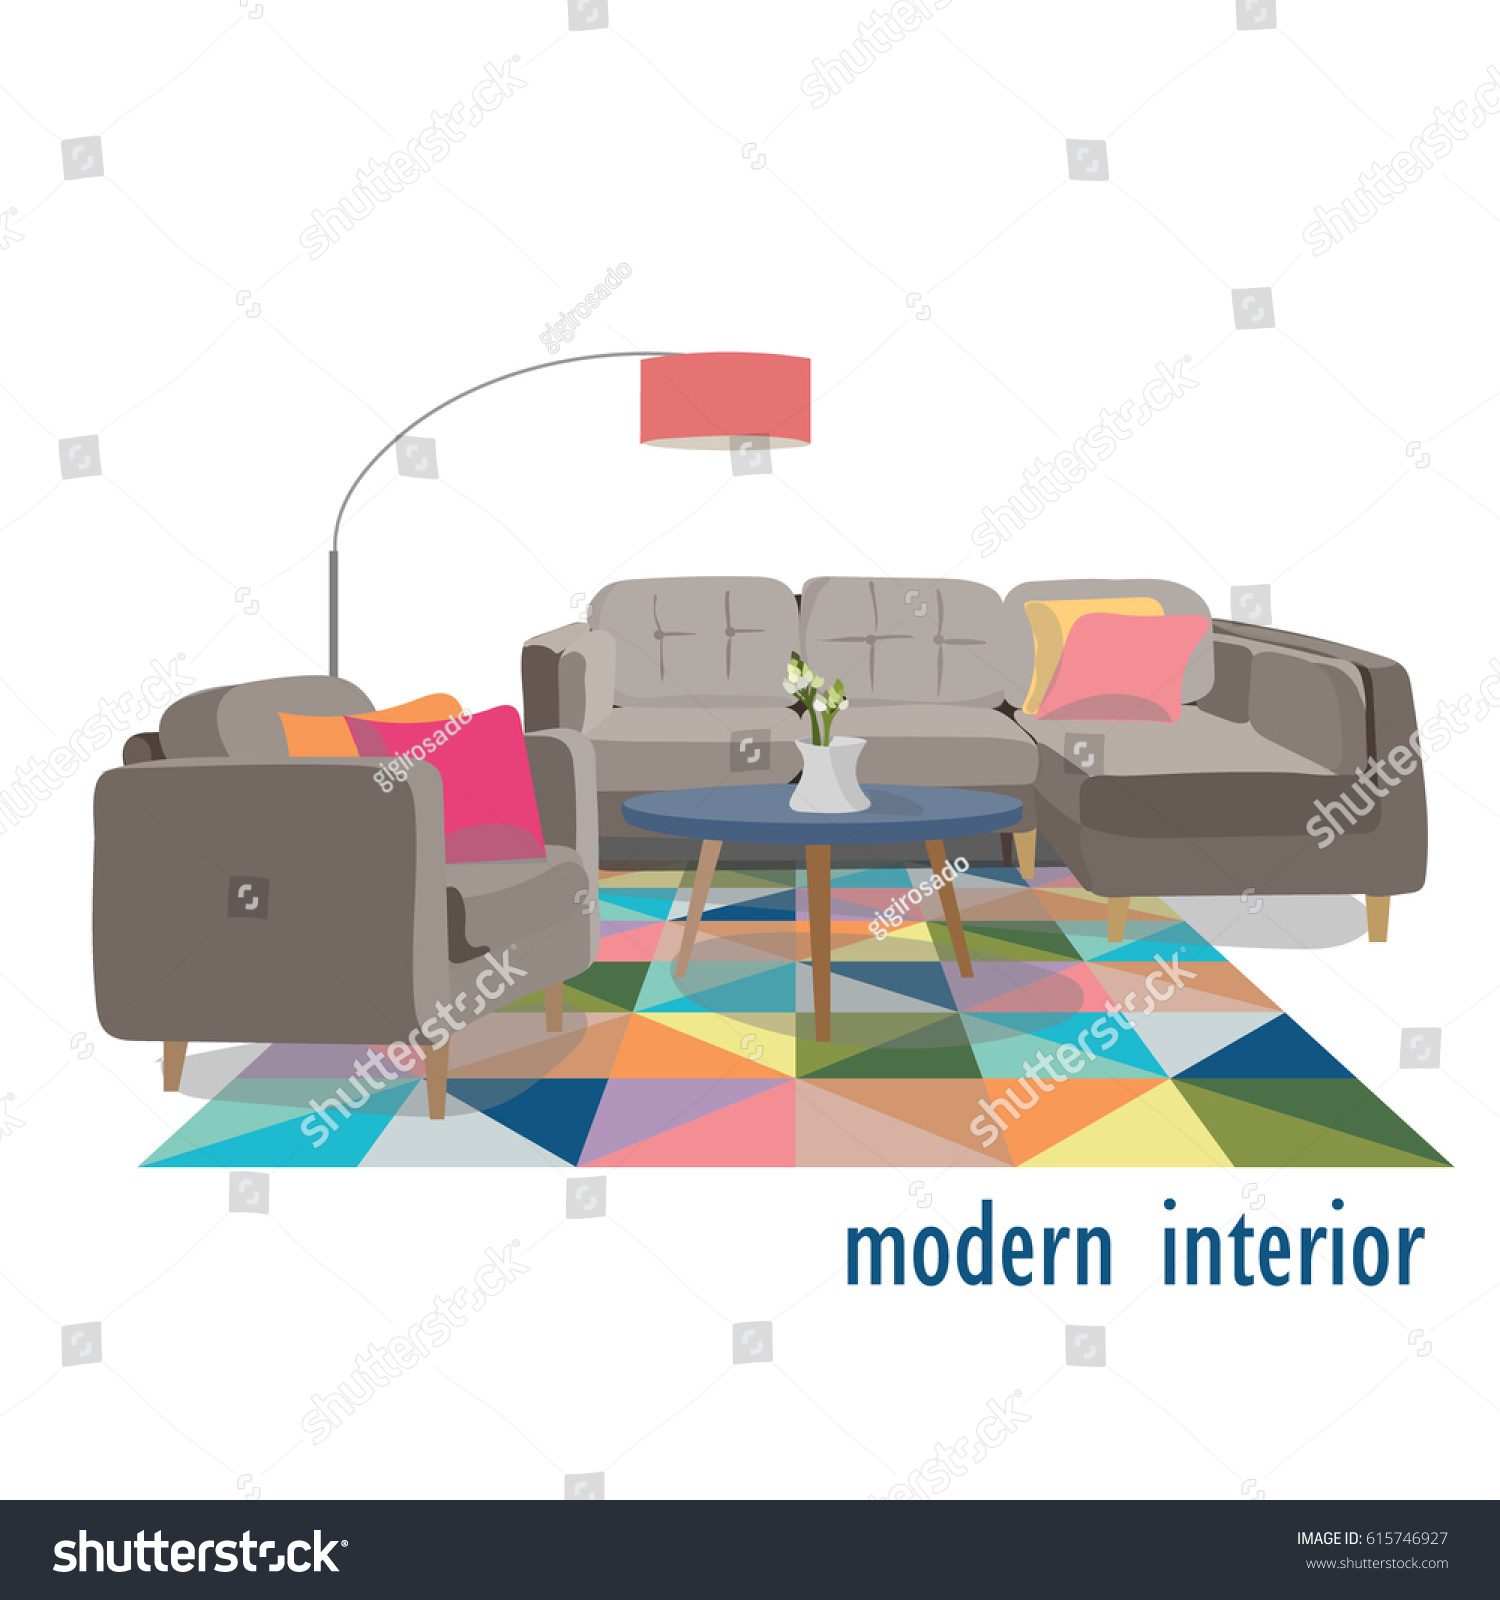 Modern living room illustrationhome interior design stock vector 615746927 shutterstock - Pretty stylish armchair design for your beautiful house interior ...